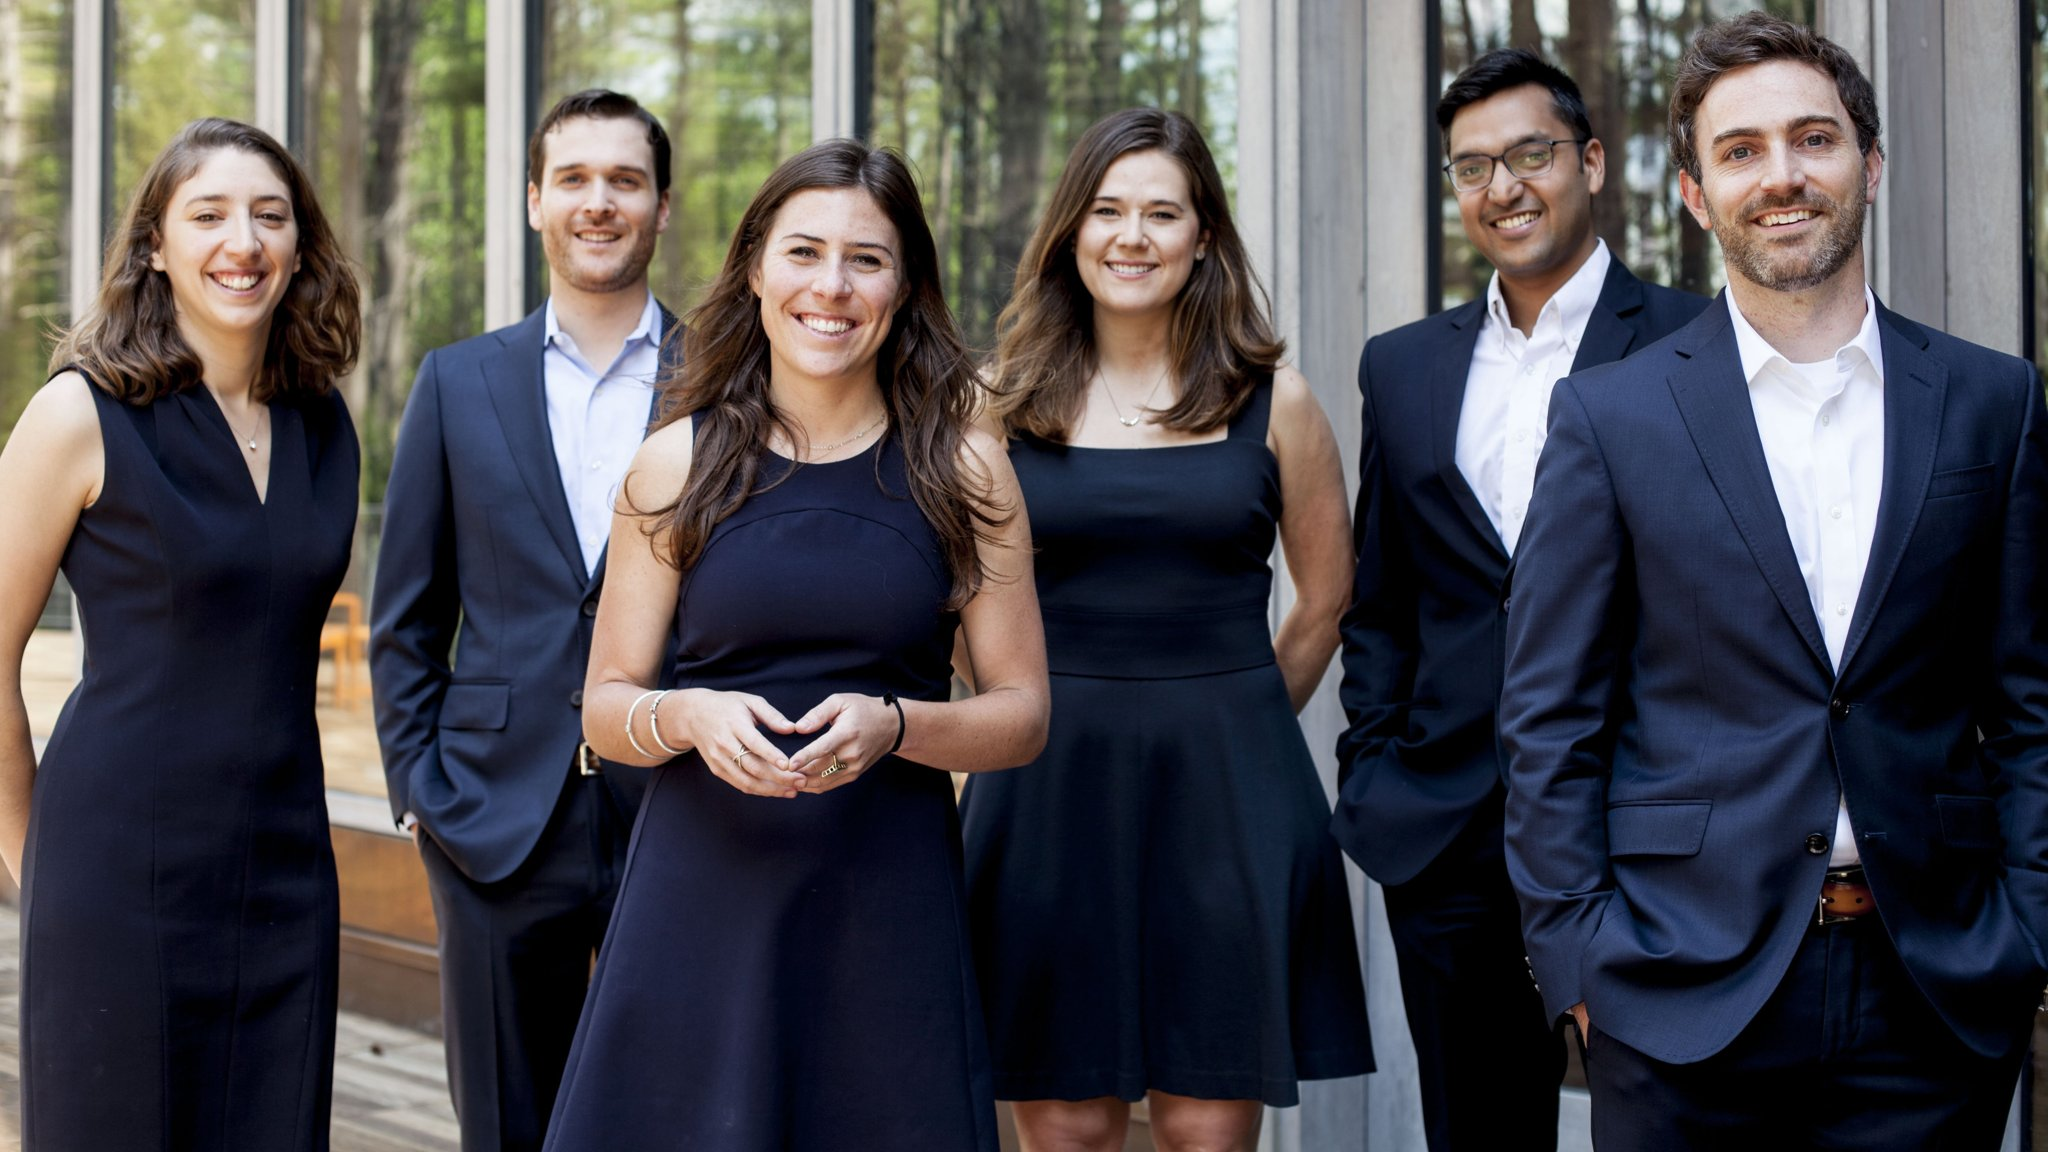 The MBA students gaining practical investment management experience